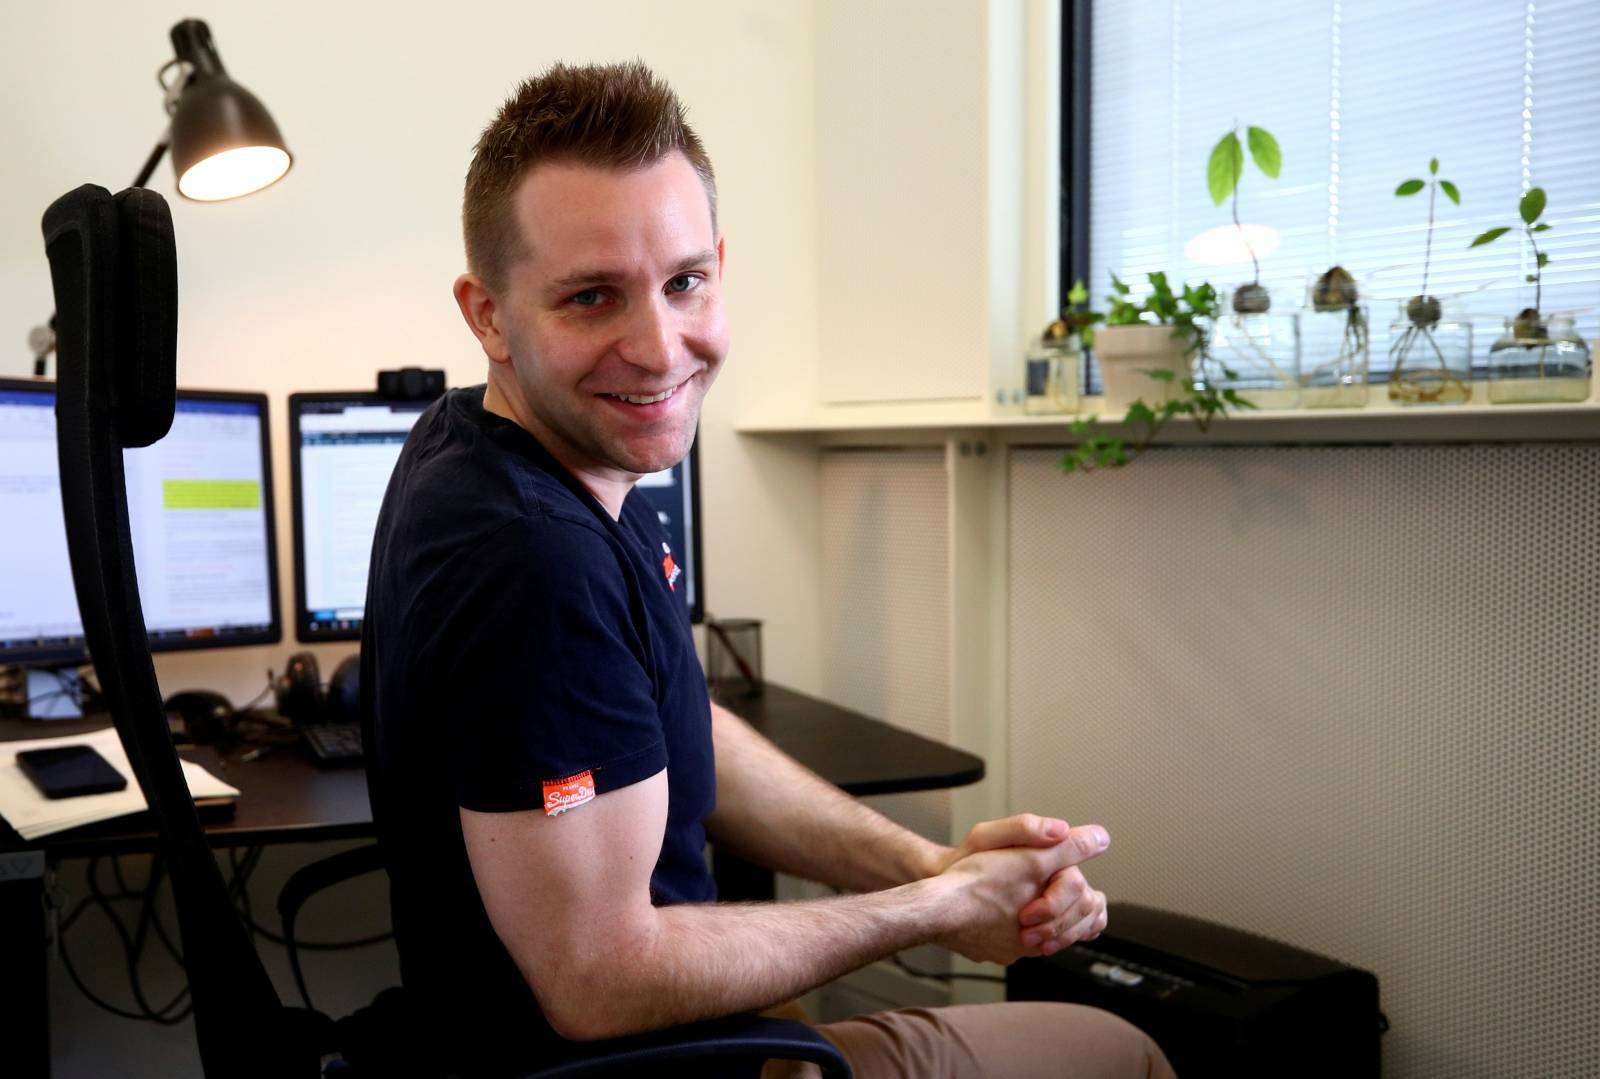 Max Schrems sits in his office ahead of a Reuters interview in Vienna